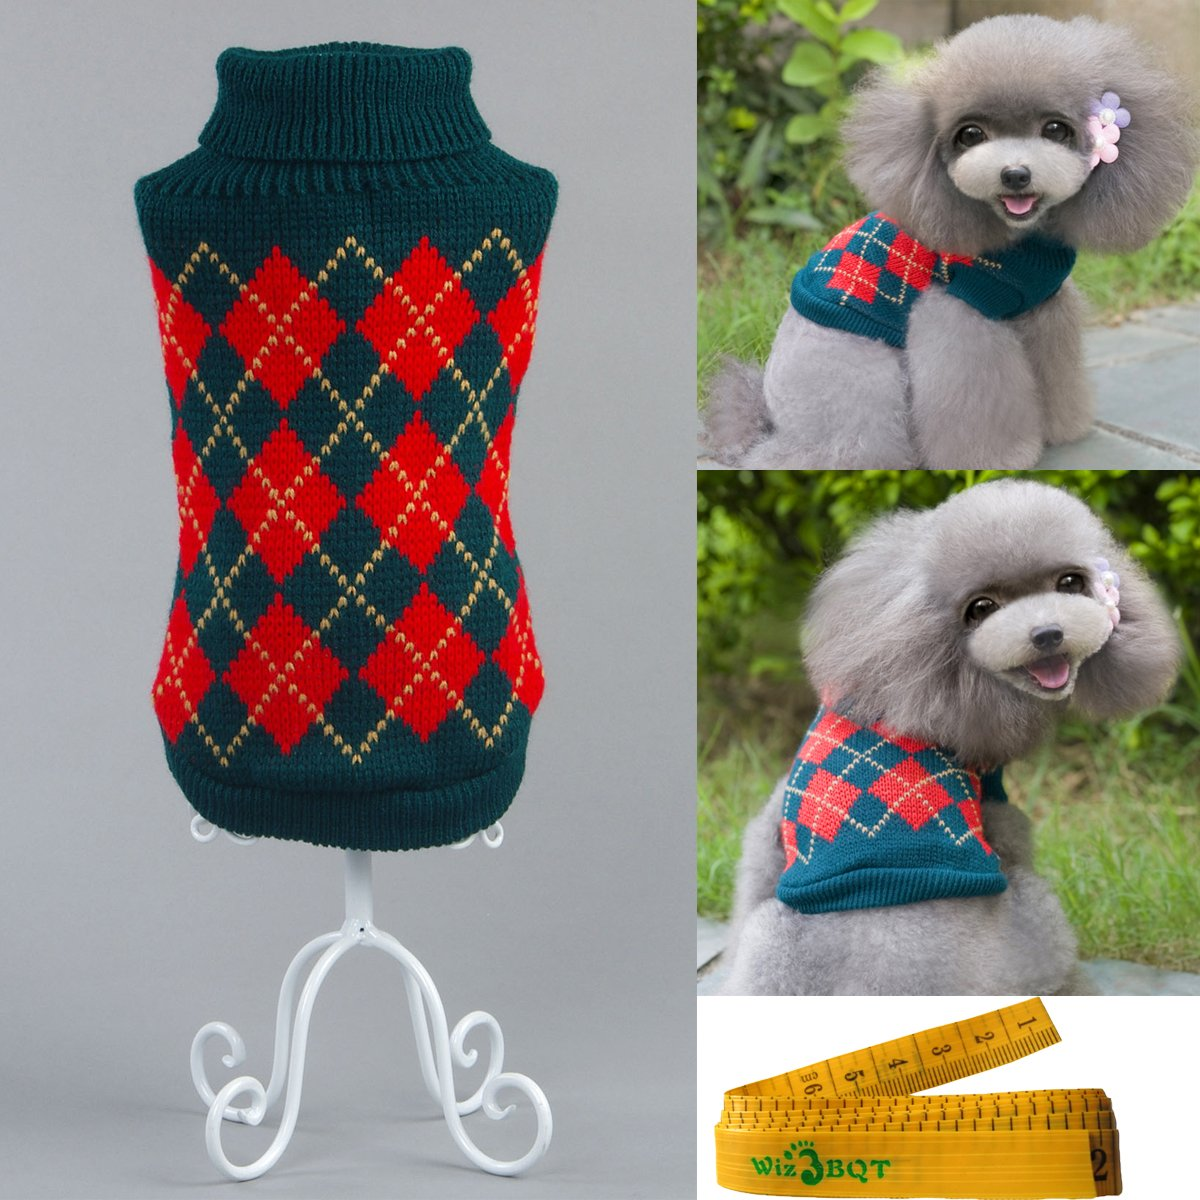 Gentle Knitted Turtleneck Chic Argyle Pet Sweater Knitwear for Dogs & Cats